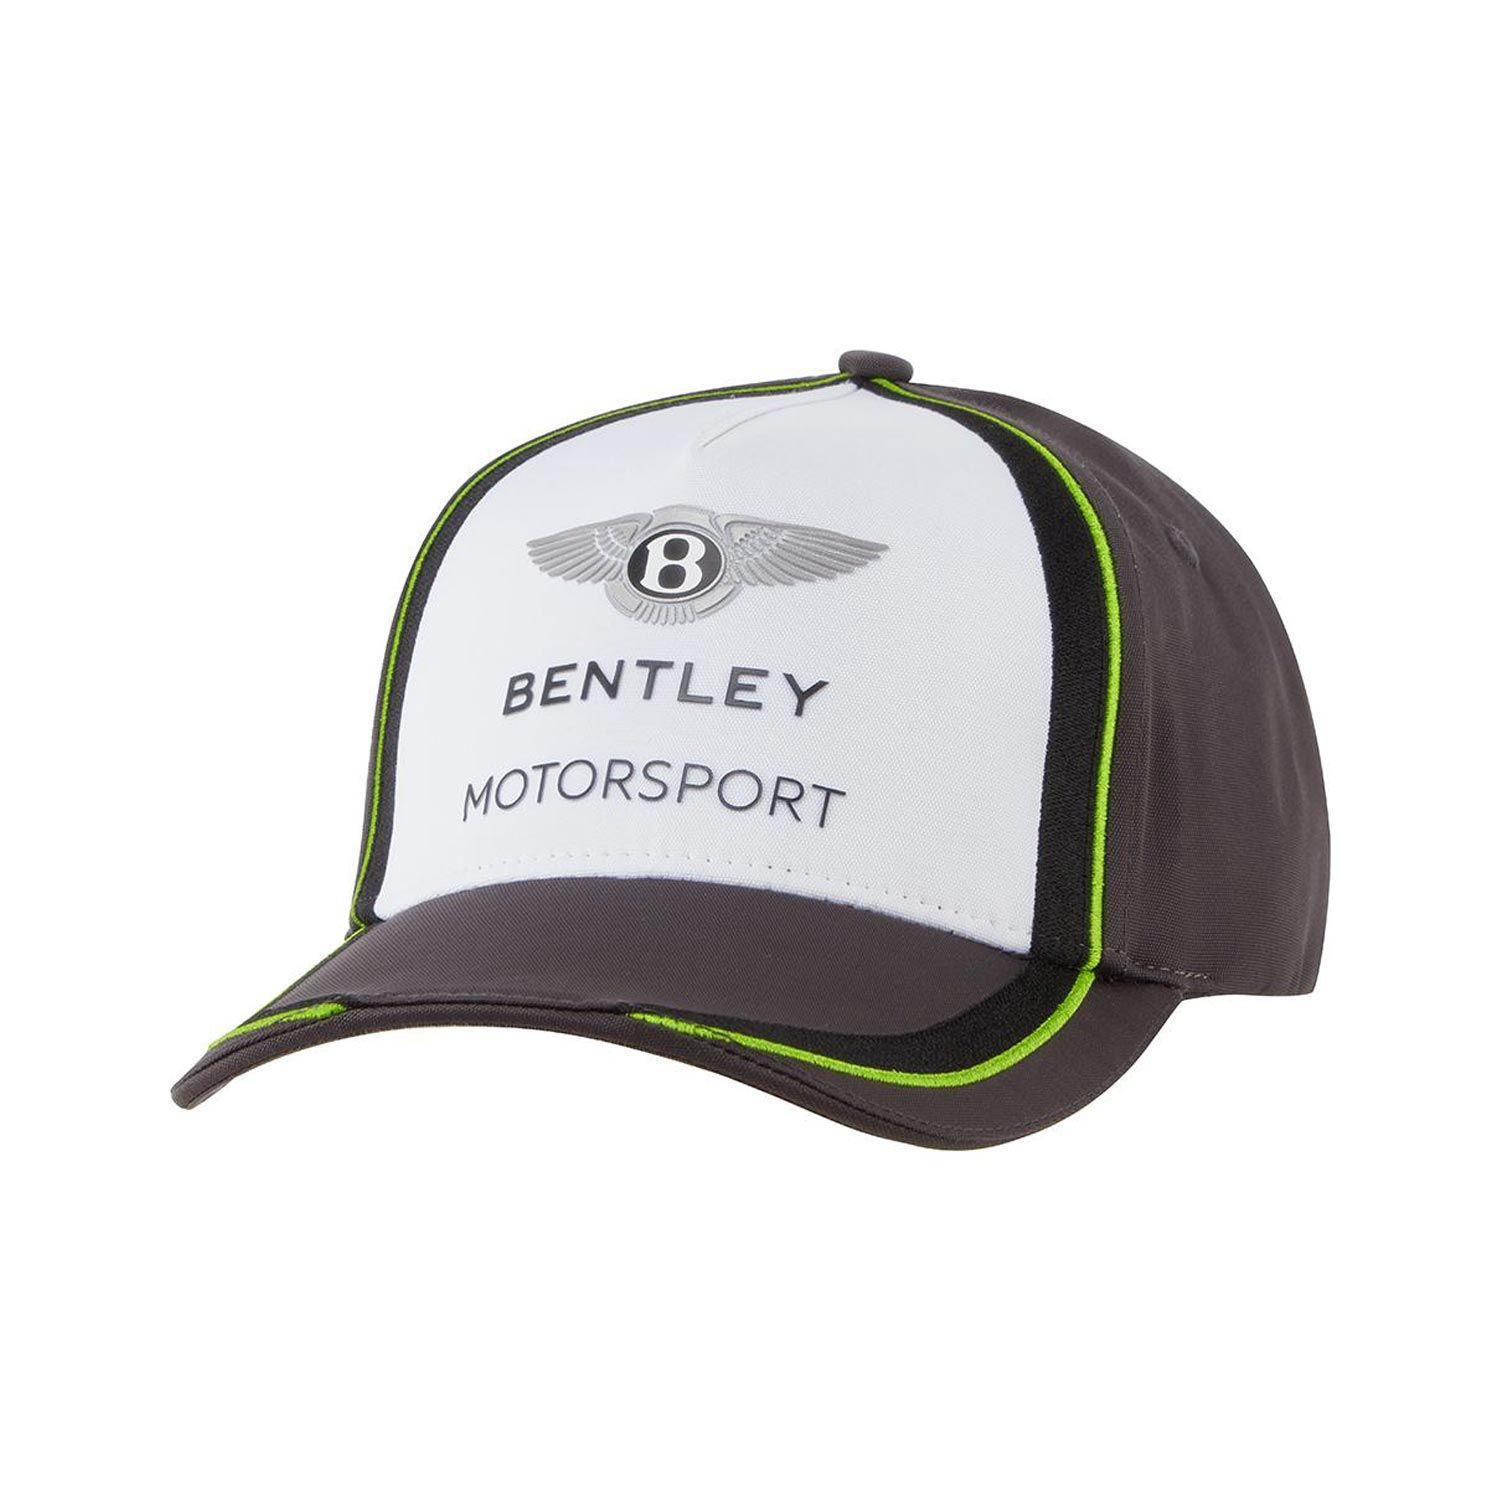 Czapka męska Team szara Bentley Motorsport 2020